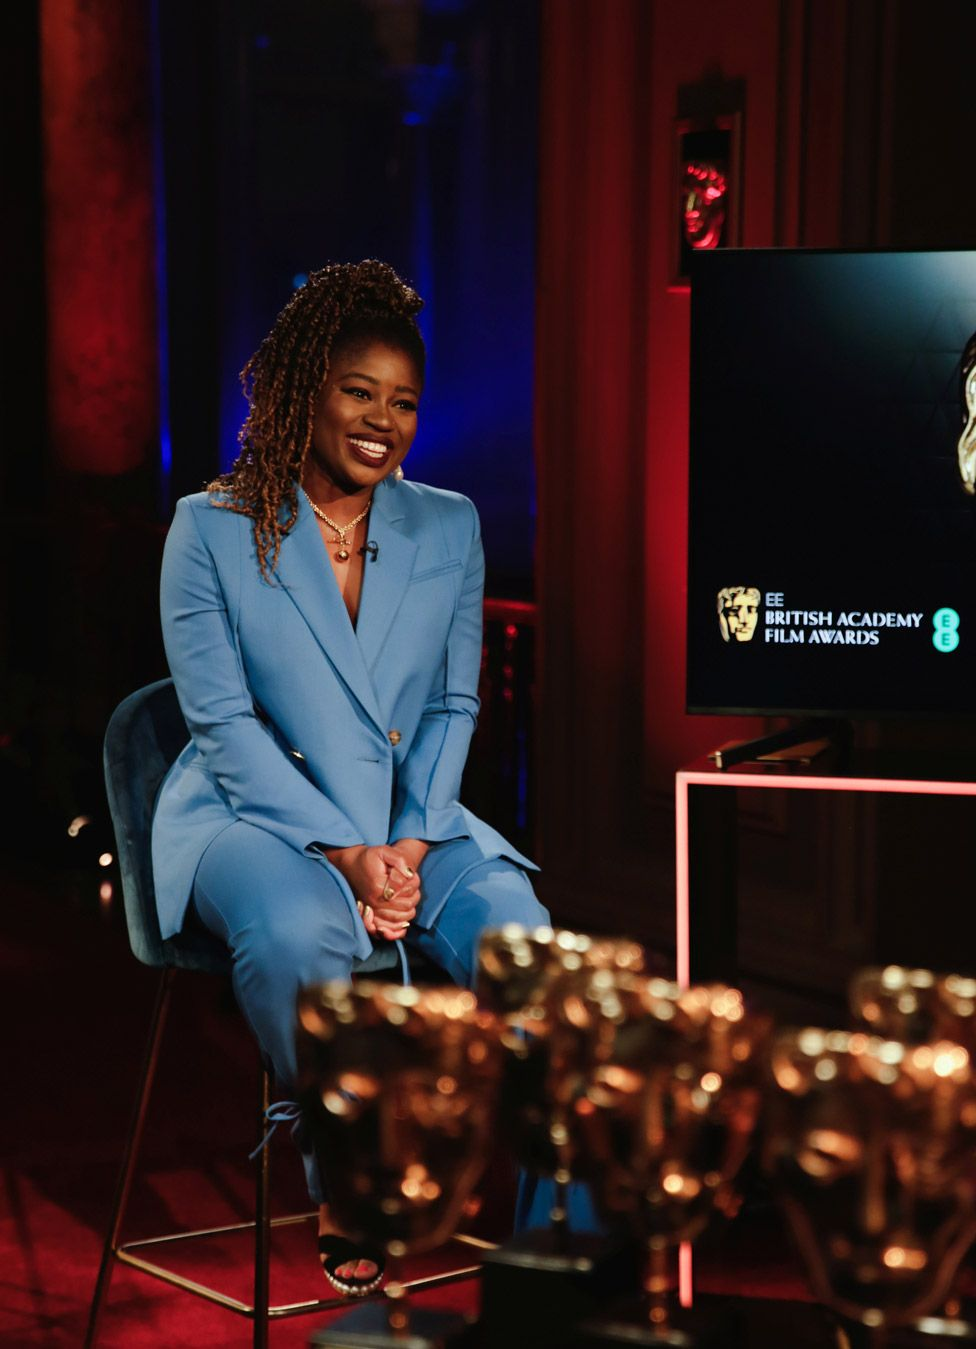 BBC Radio 1 DJ Clara Amfo announced eight of the craft winners in the first half of the ceremony on Saturday